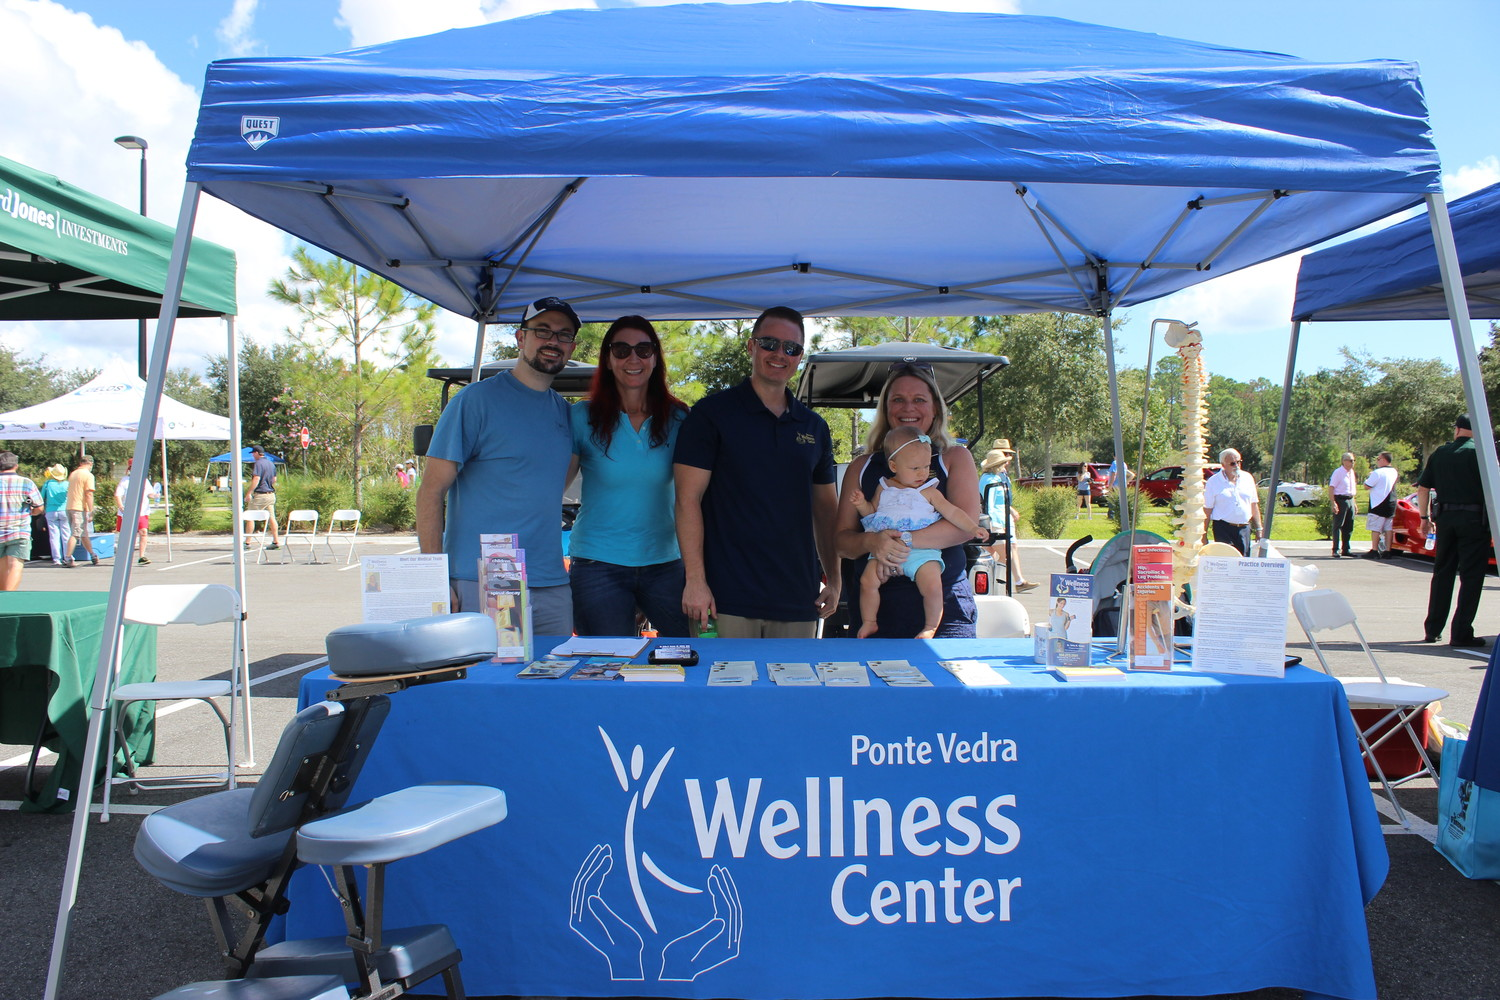 The Ponte Vedra Wellness Center enjoys the Auto Show.